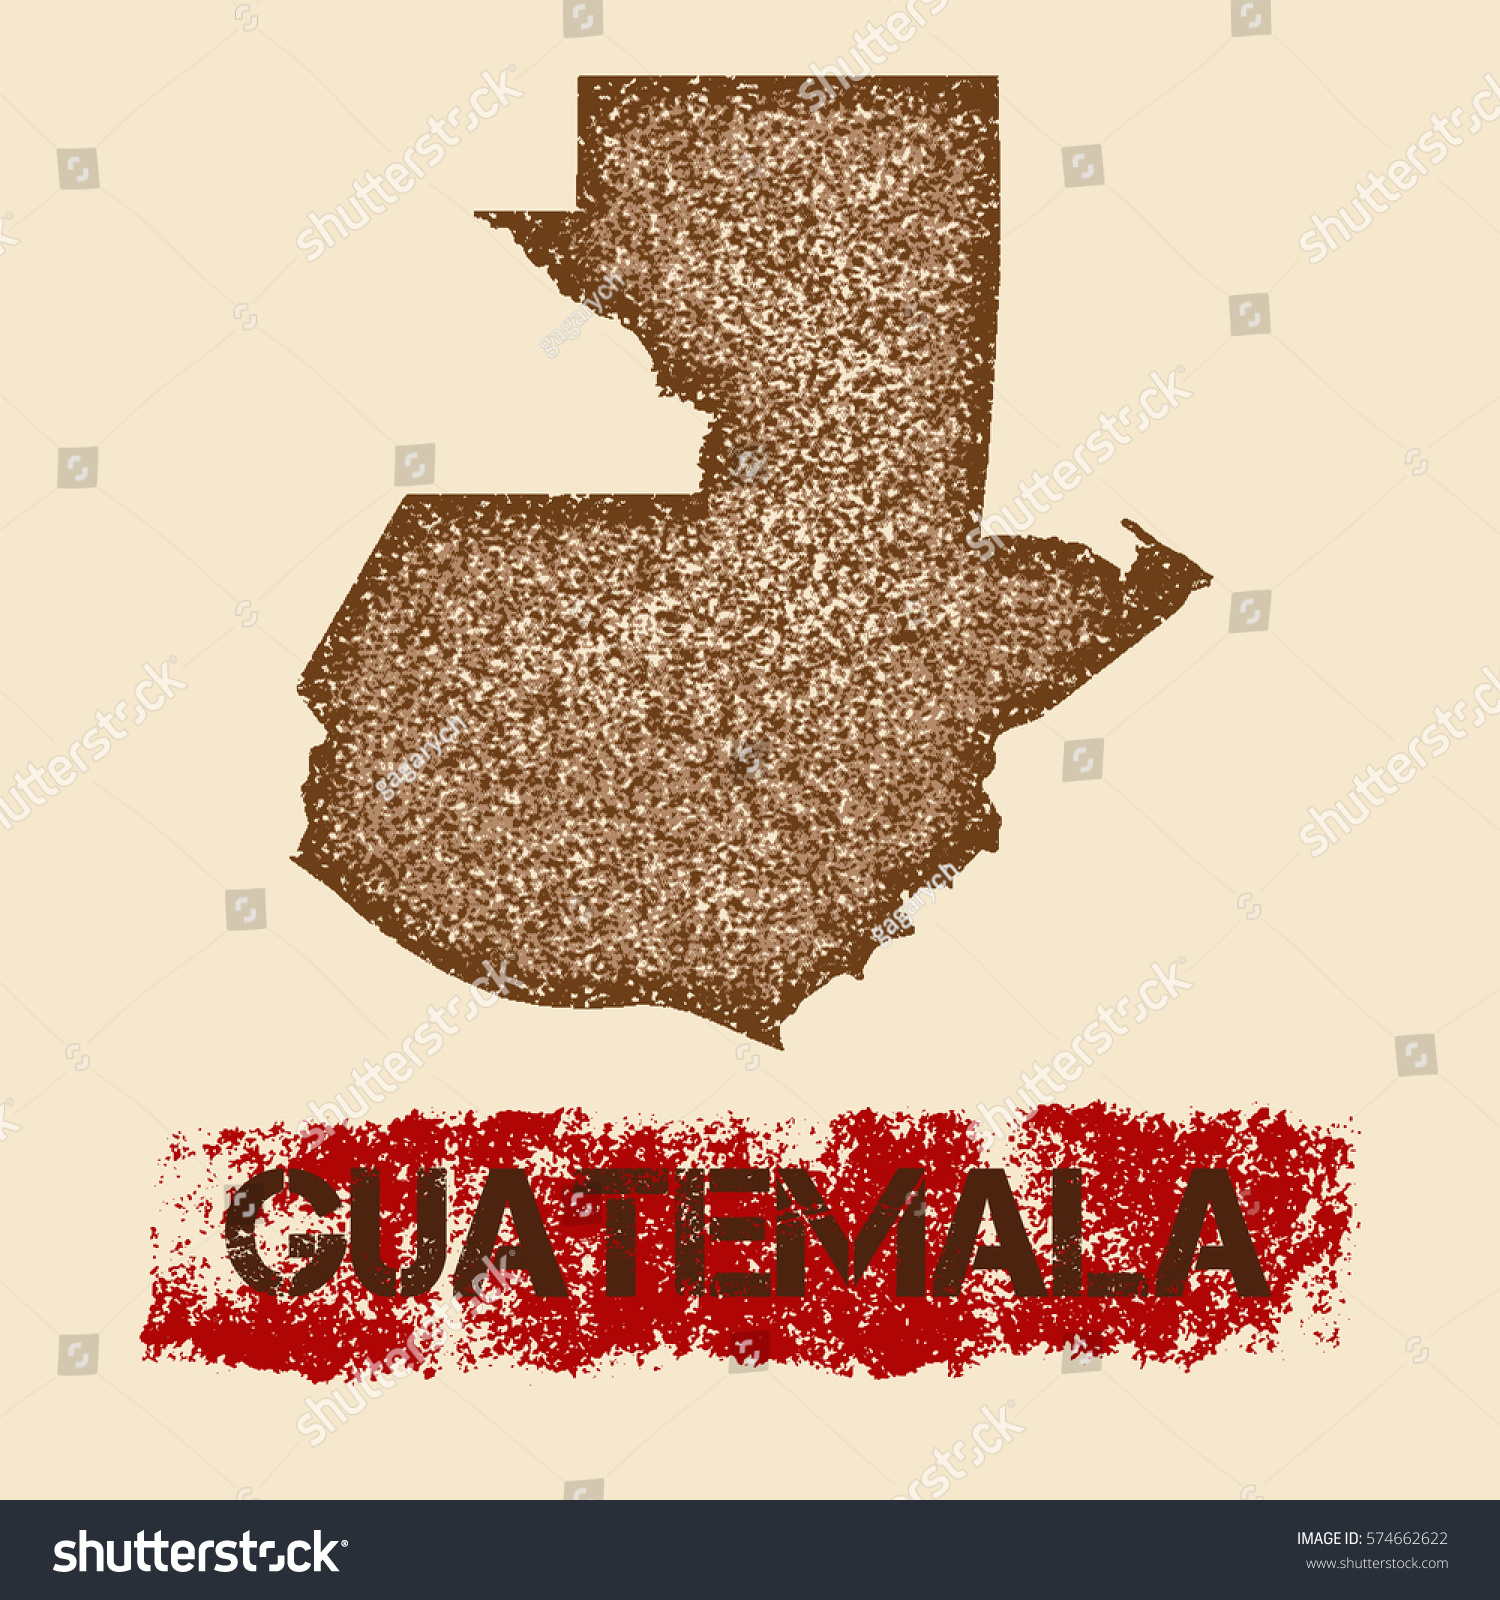 guatemala distressed map grunge patriotic poster stock vector